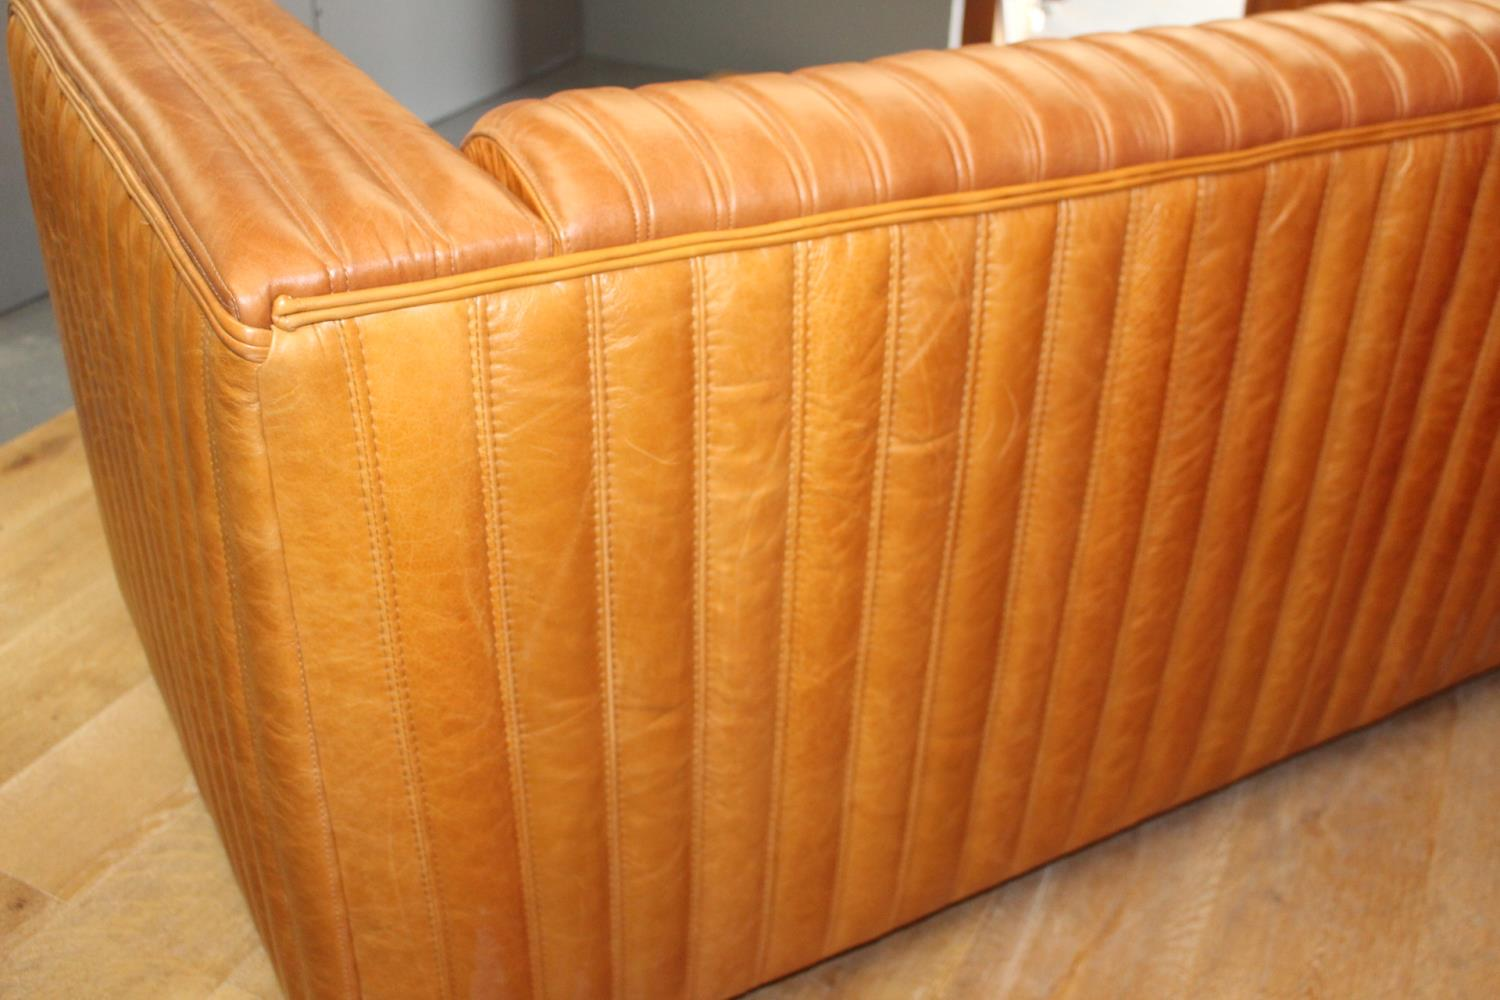 English ribbed leather sofa. - Image 2 of 2